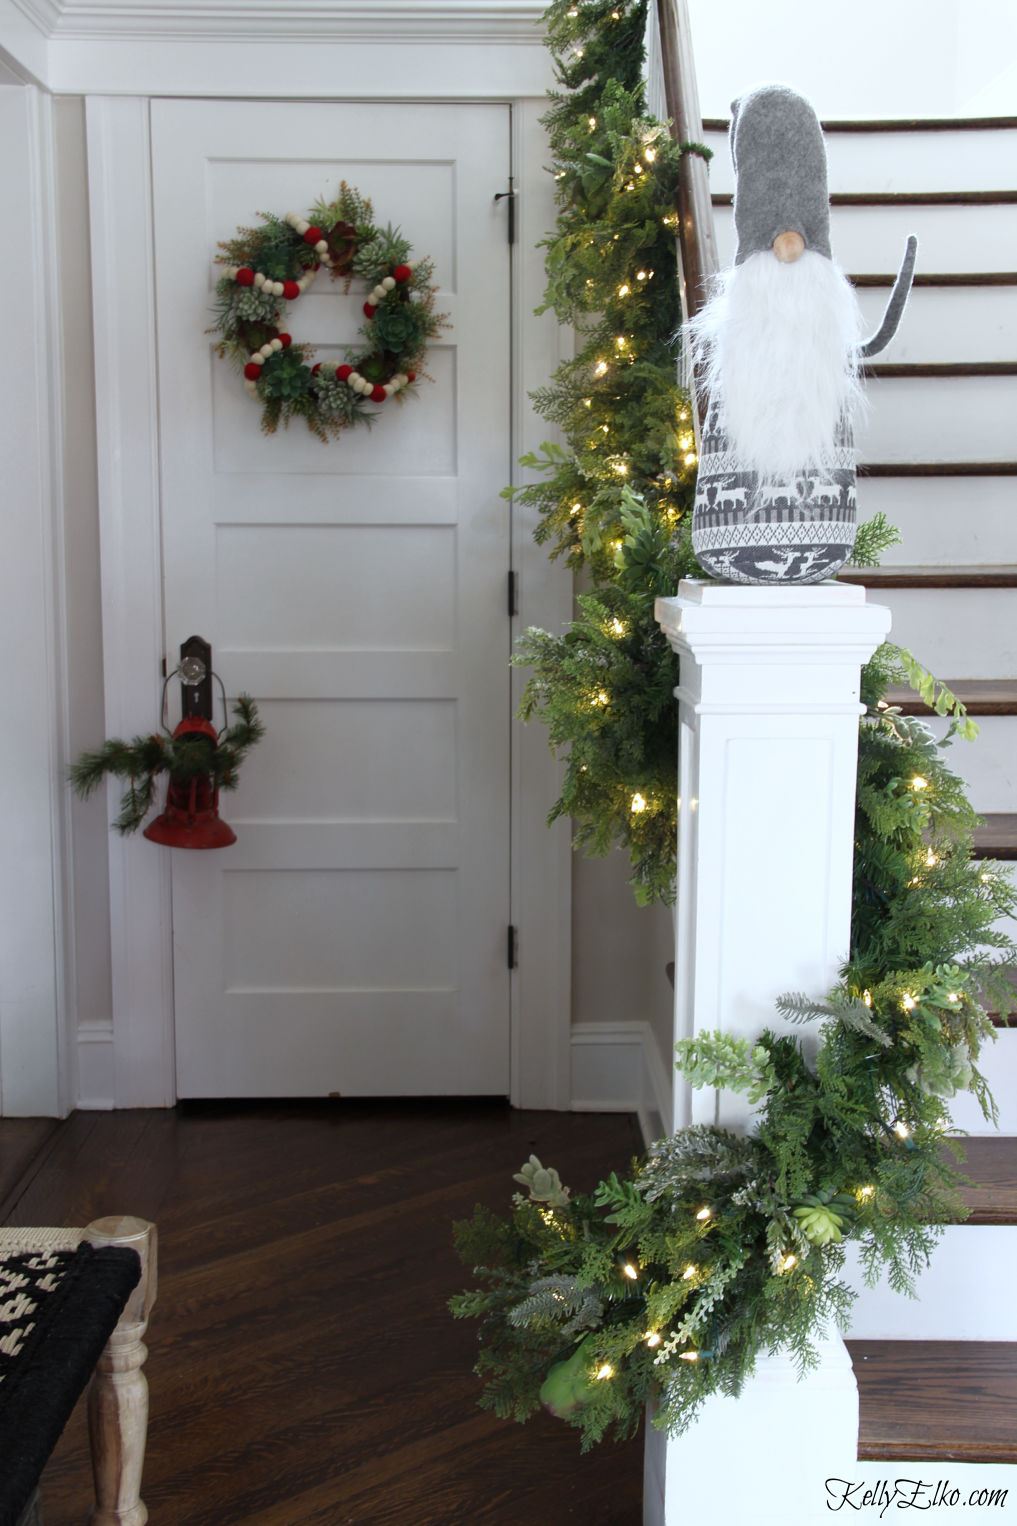 Love this succulent garland on the staircase kellyelko.com #christmas #christmasdecor #christmasfoyer #christmasbanister #christmasgarland #gnome #christmashometour